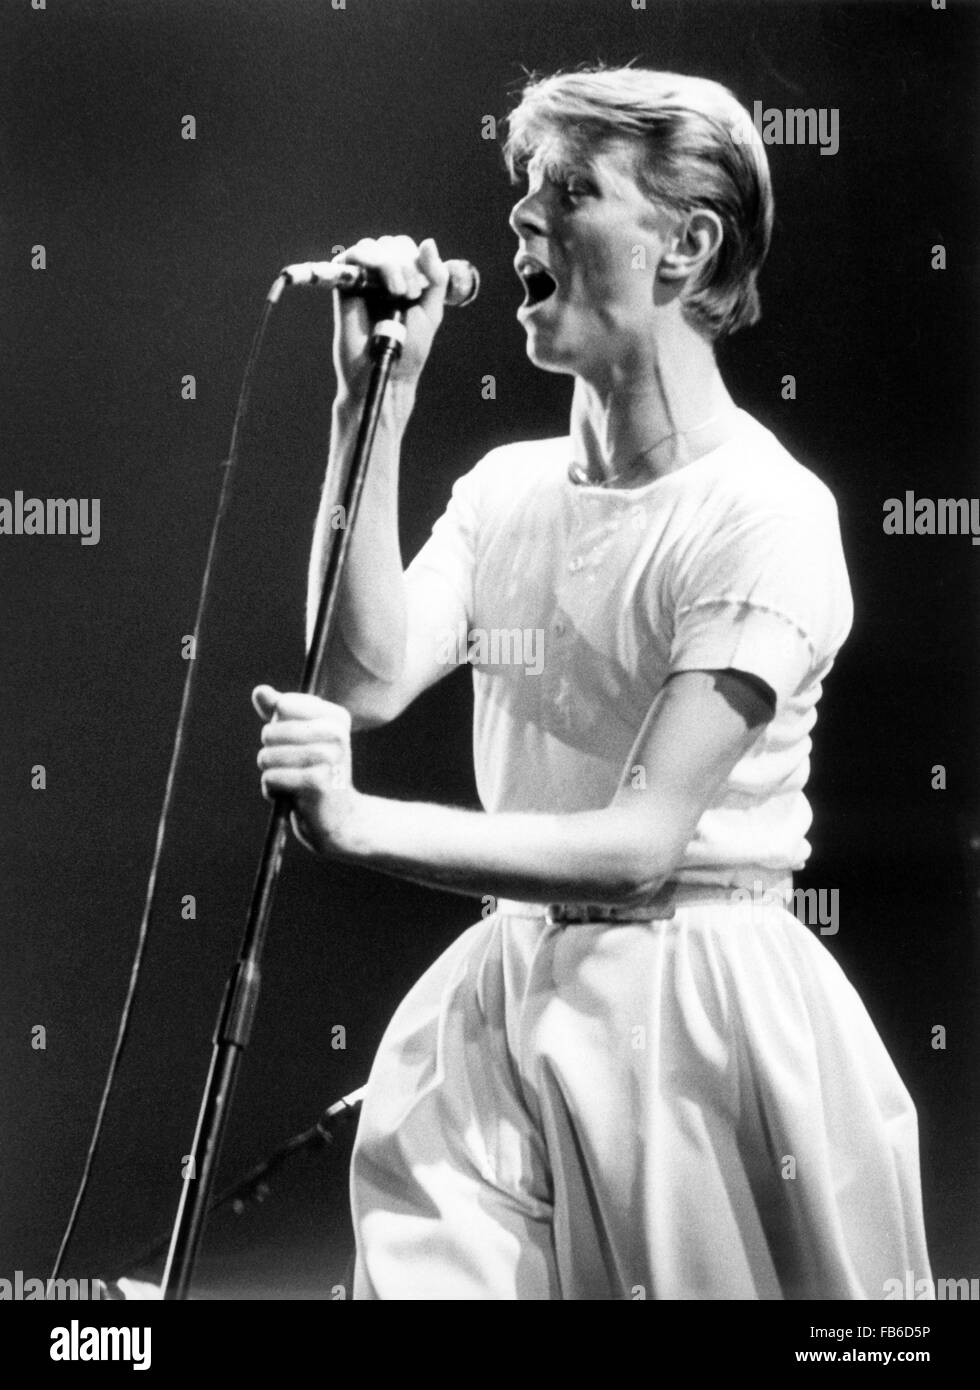 David Bowie in concert on 14 May 1978 in the Festhalle in Frankfurt - Germany. Stock Photo